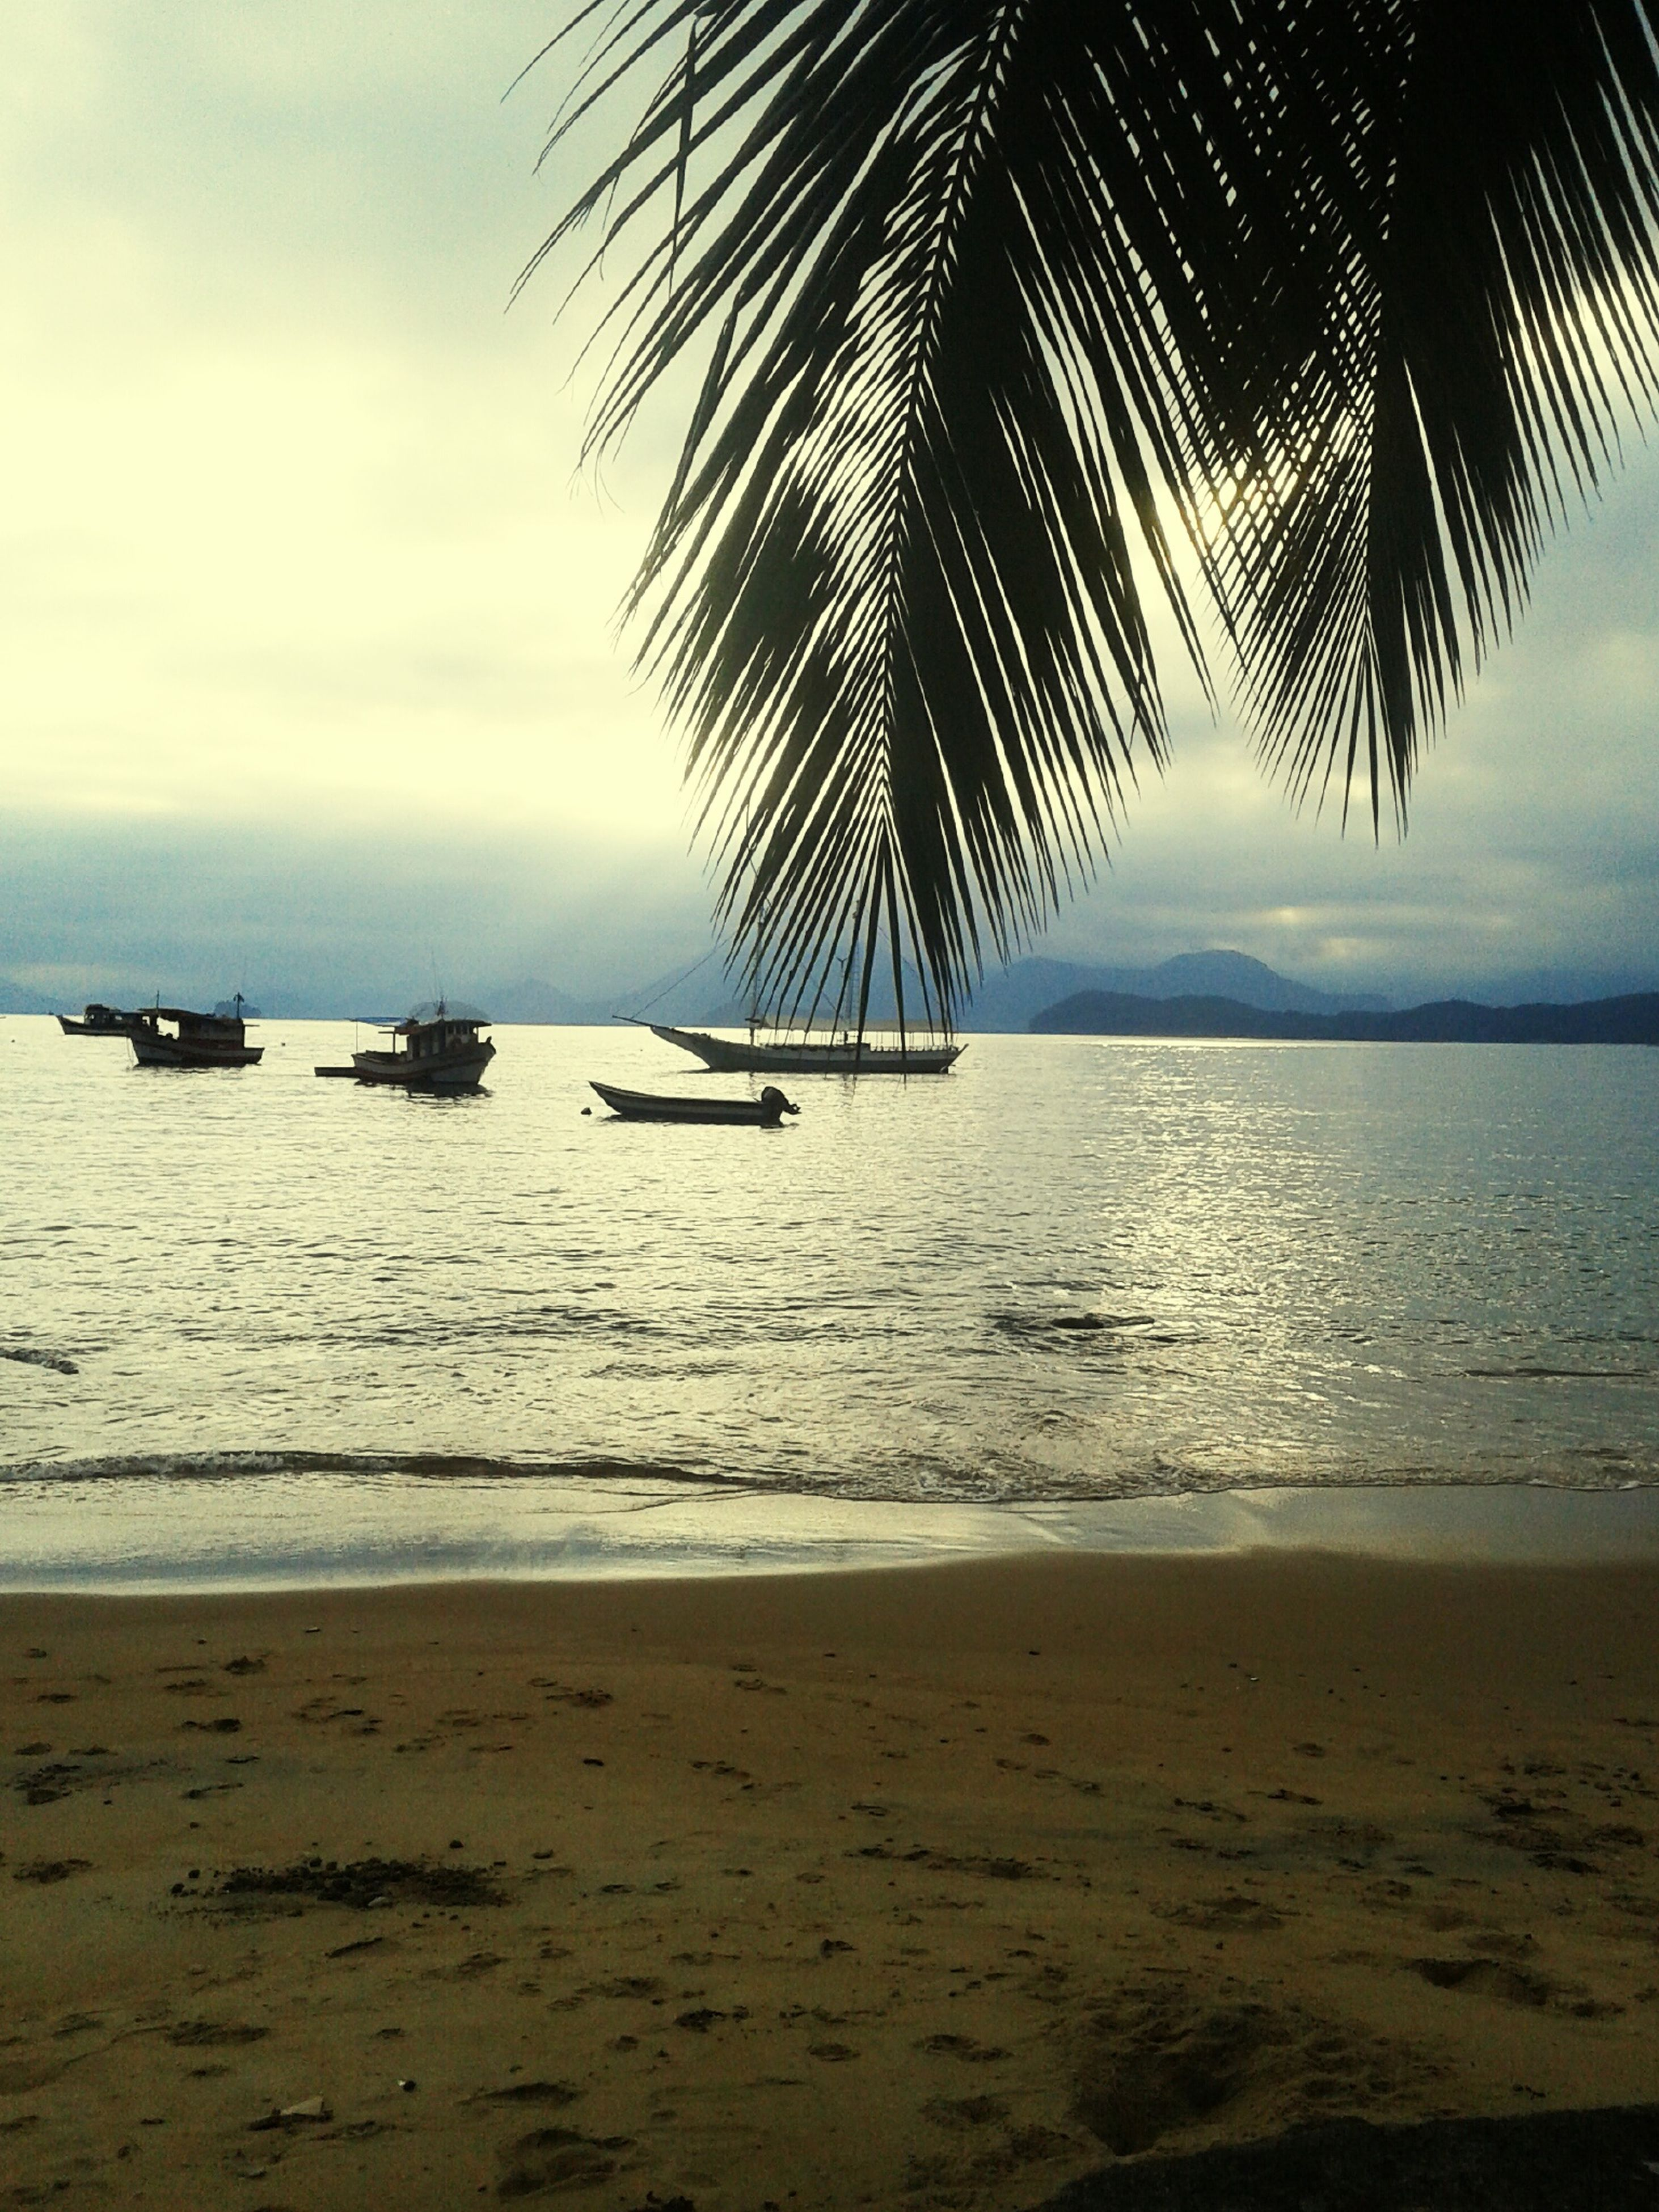 sea, beach, water, horizon over water, shore, nautical vessel, sky, sand, palm tree, transportation, tranquil scene, tranquility, boat, scenics, mode of transport, beauty in nature, nature, sunset, moored, idyllic